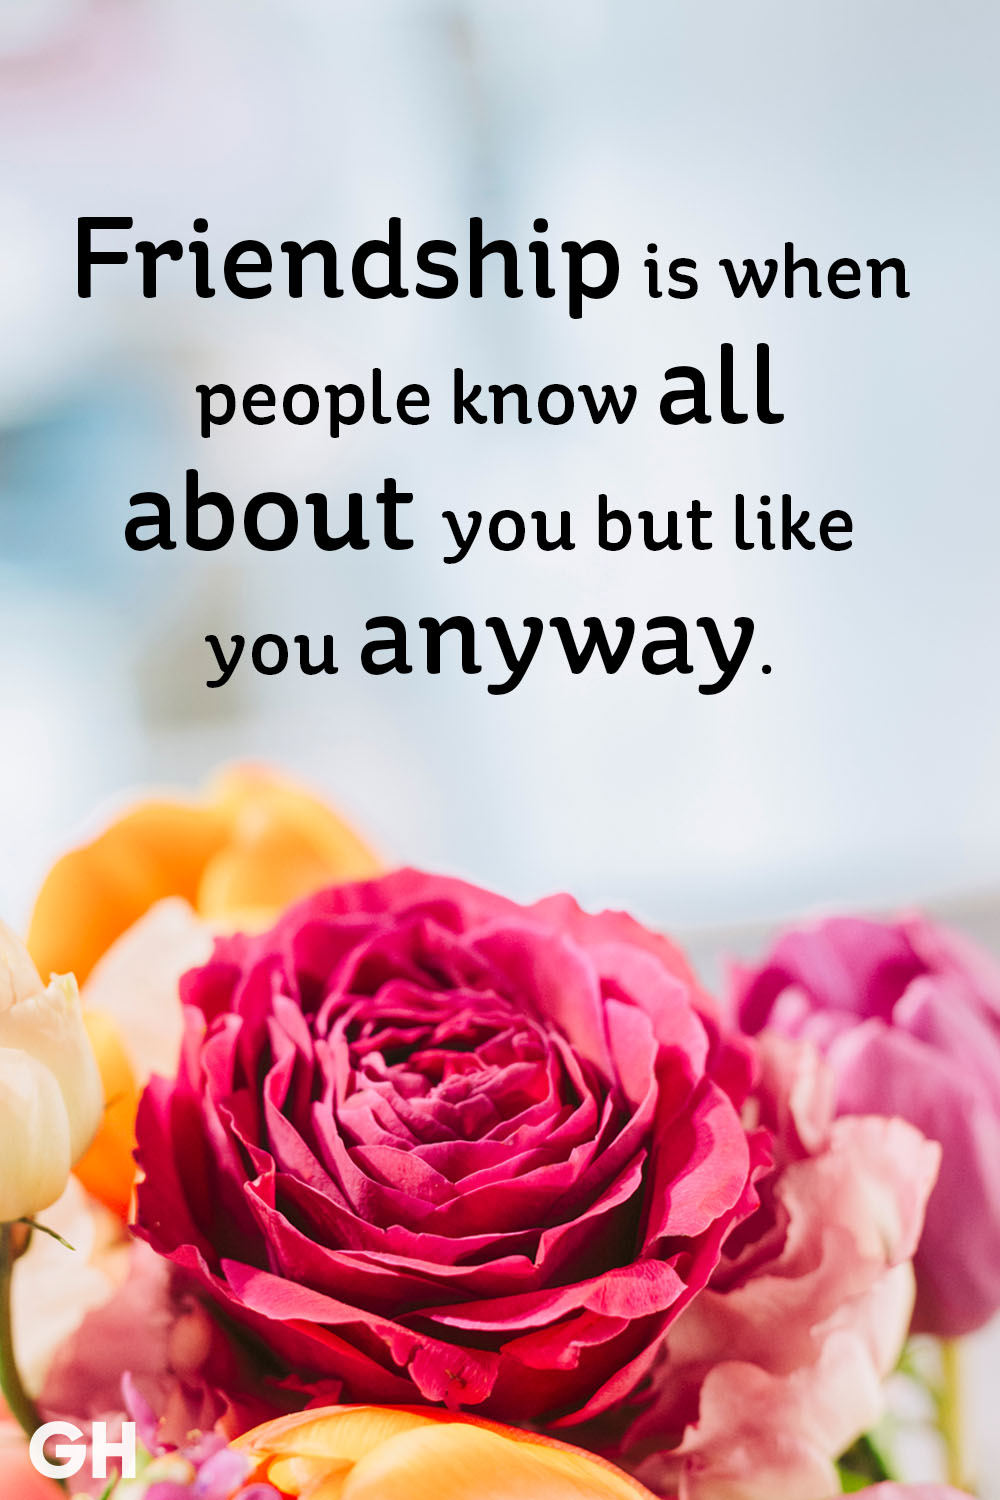 Quote About True Friendship 20 Short Friendship Quotes To Share With Your Bff  Cute Sayings